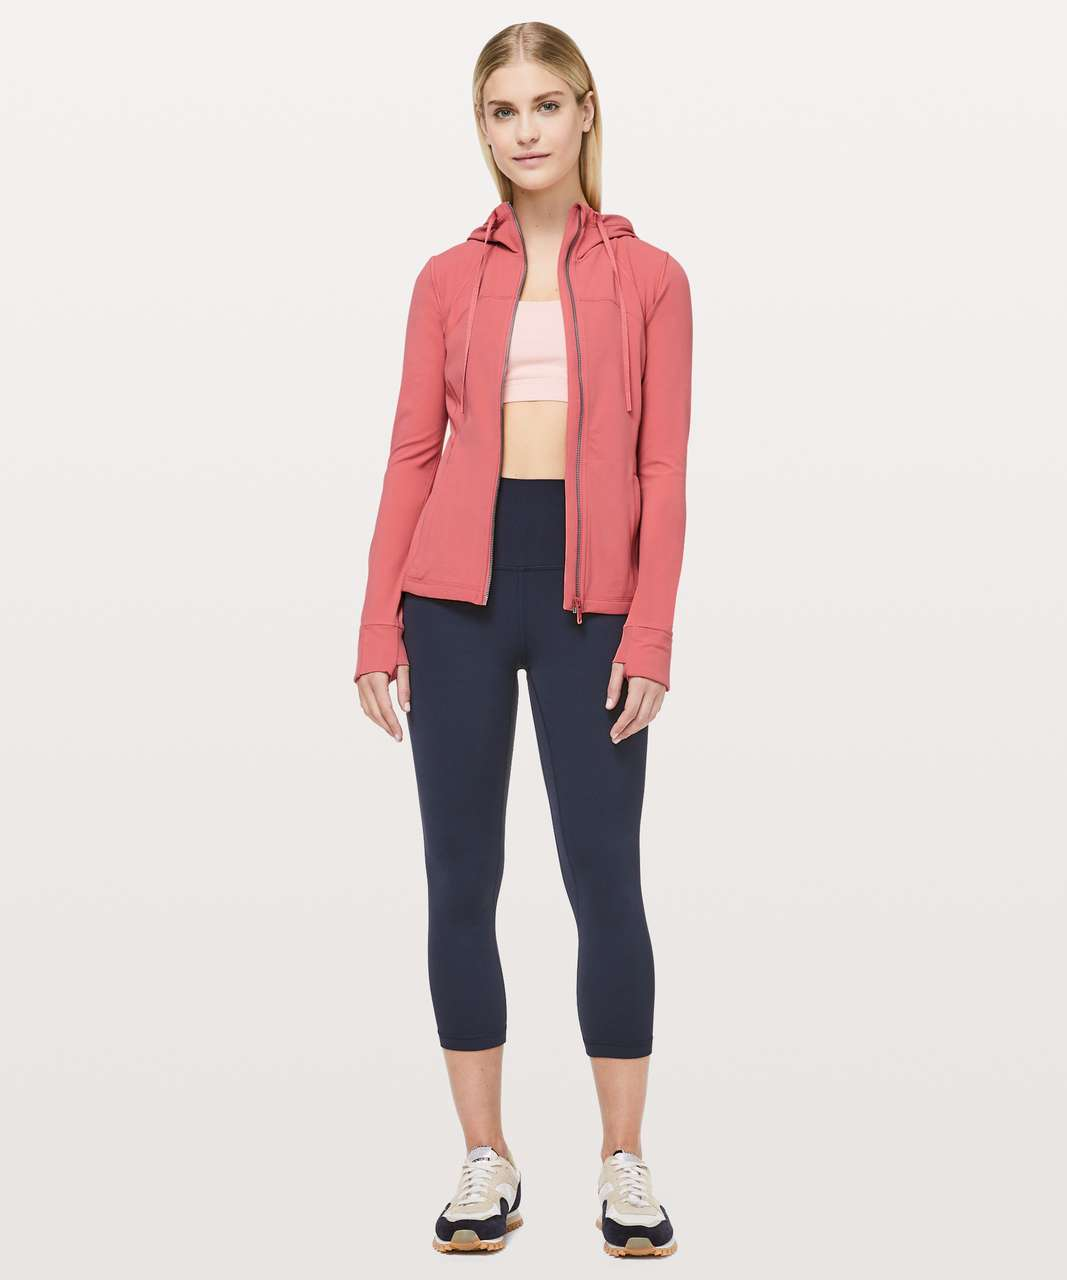 Lululemon Hooded Define Jacket *Nulu - Blush Coral